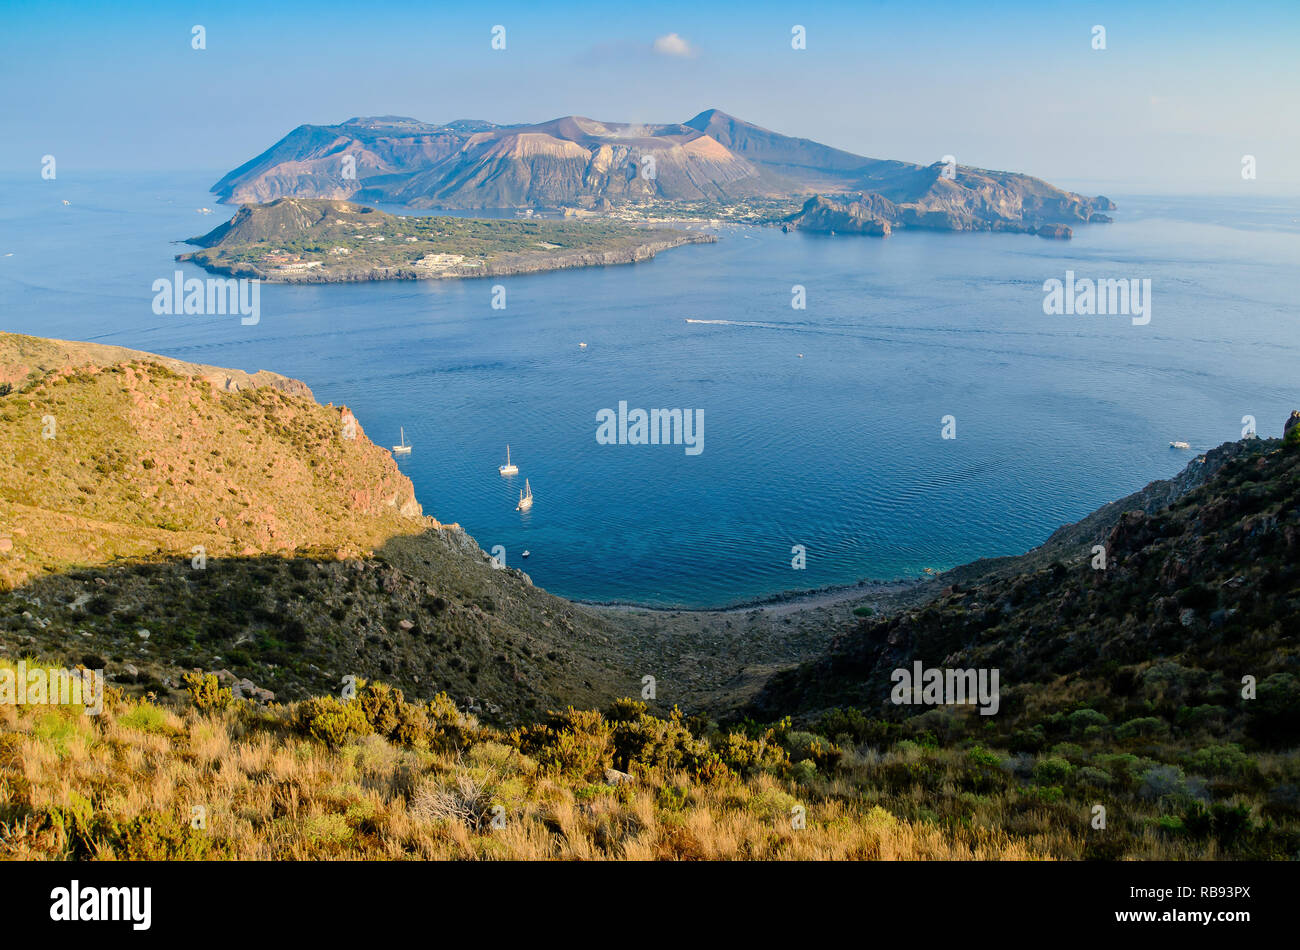 Aerial view of the Island of Vulcano from Lipari in the Aeolian Islands archipelago, Thyrrenian Sea, Sicily, Italy Stock Photo